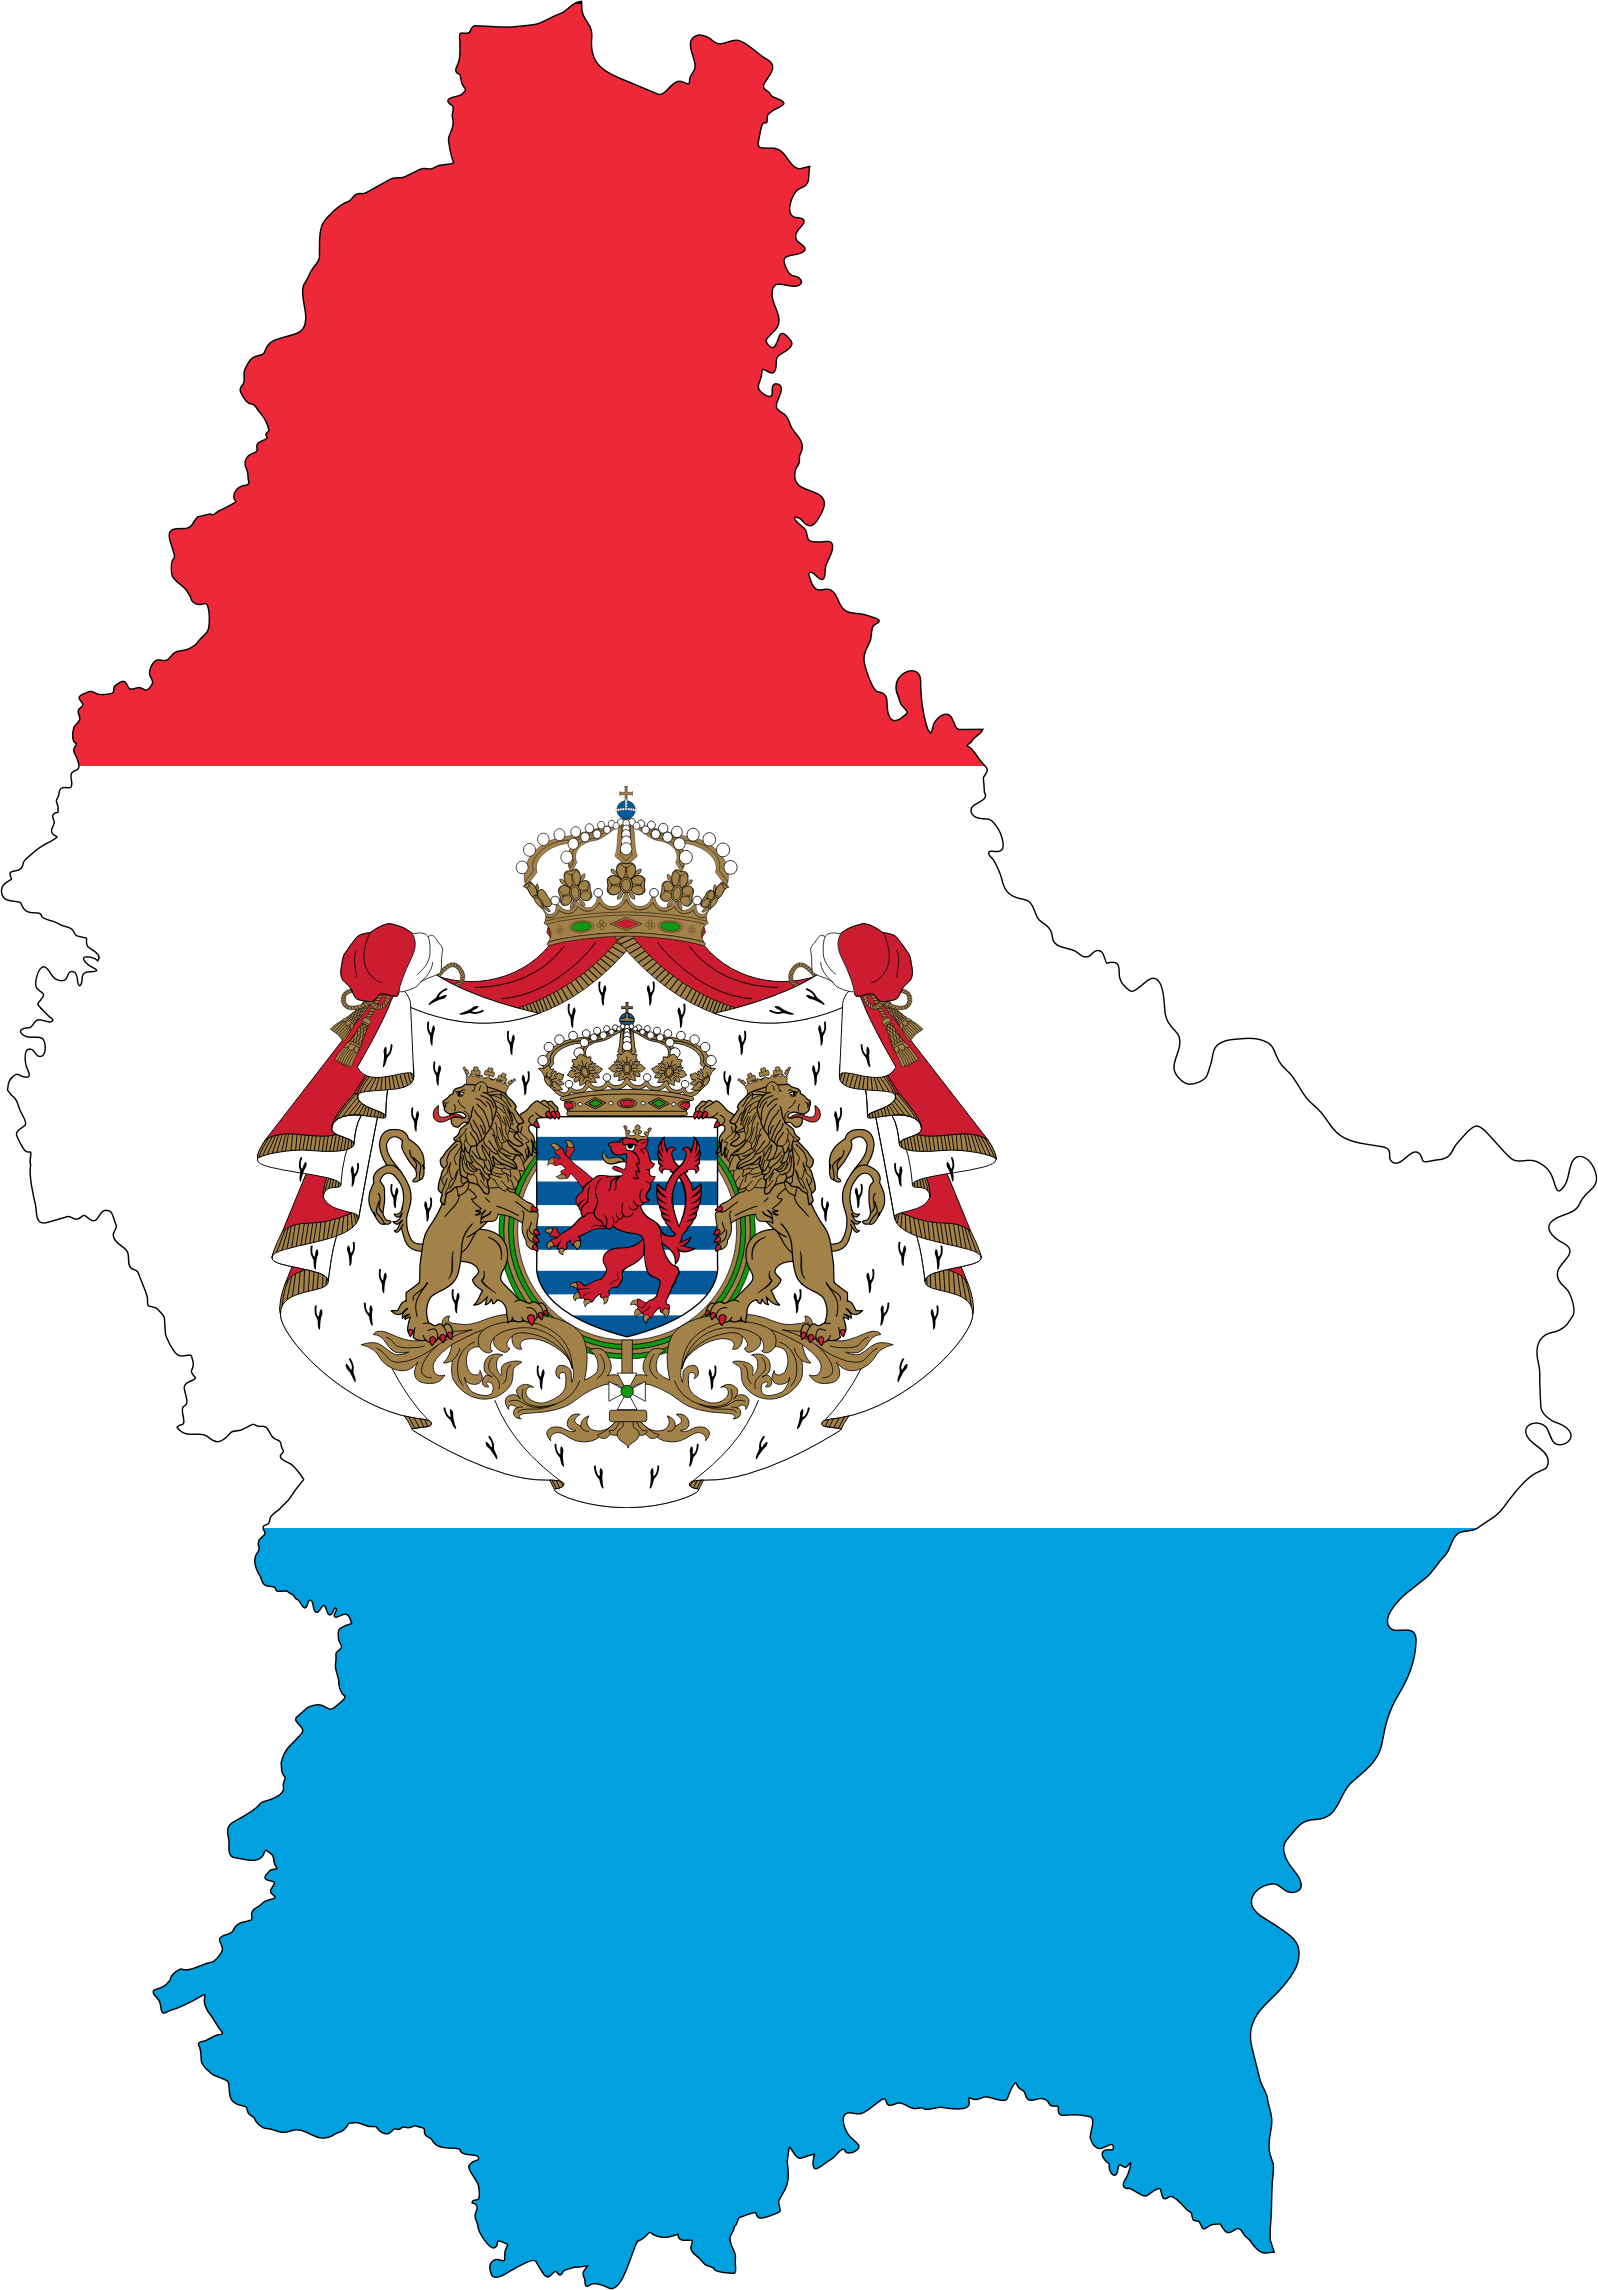 Clipart luxembourg.